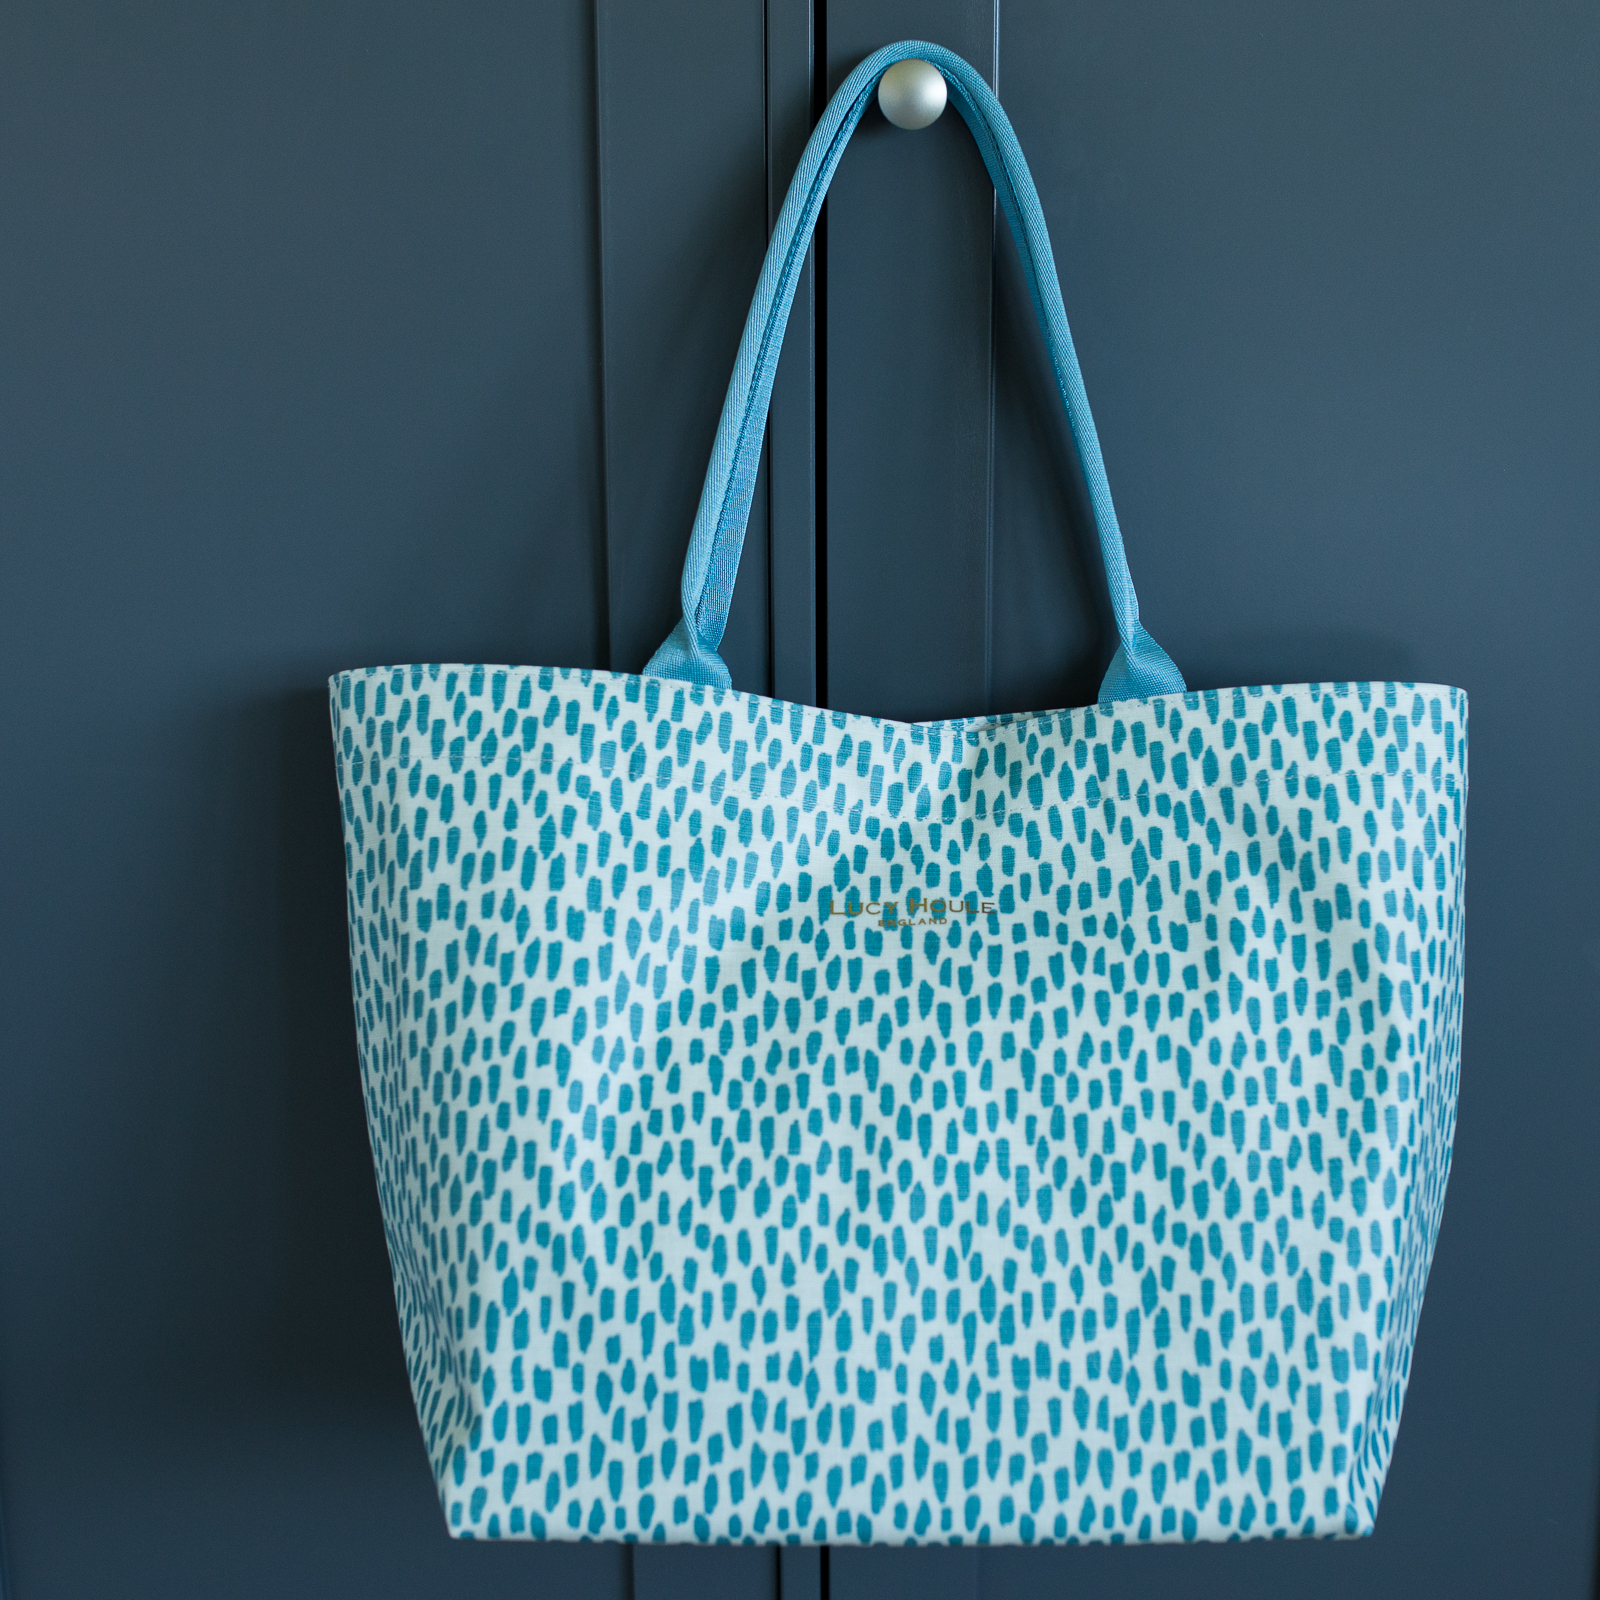 Aqua Cobblestone Medium Tote Bag with Aqua Handles